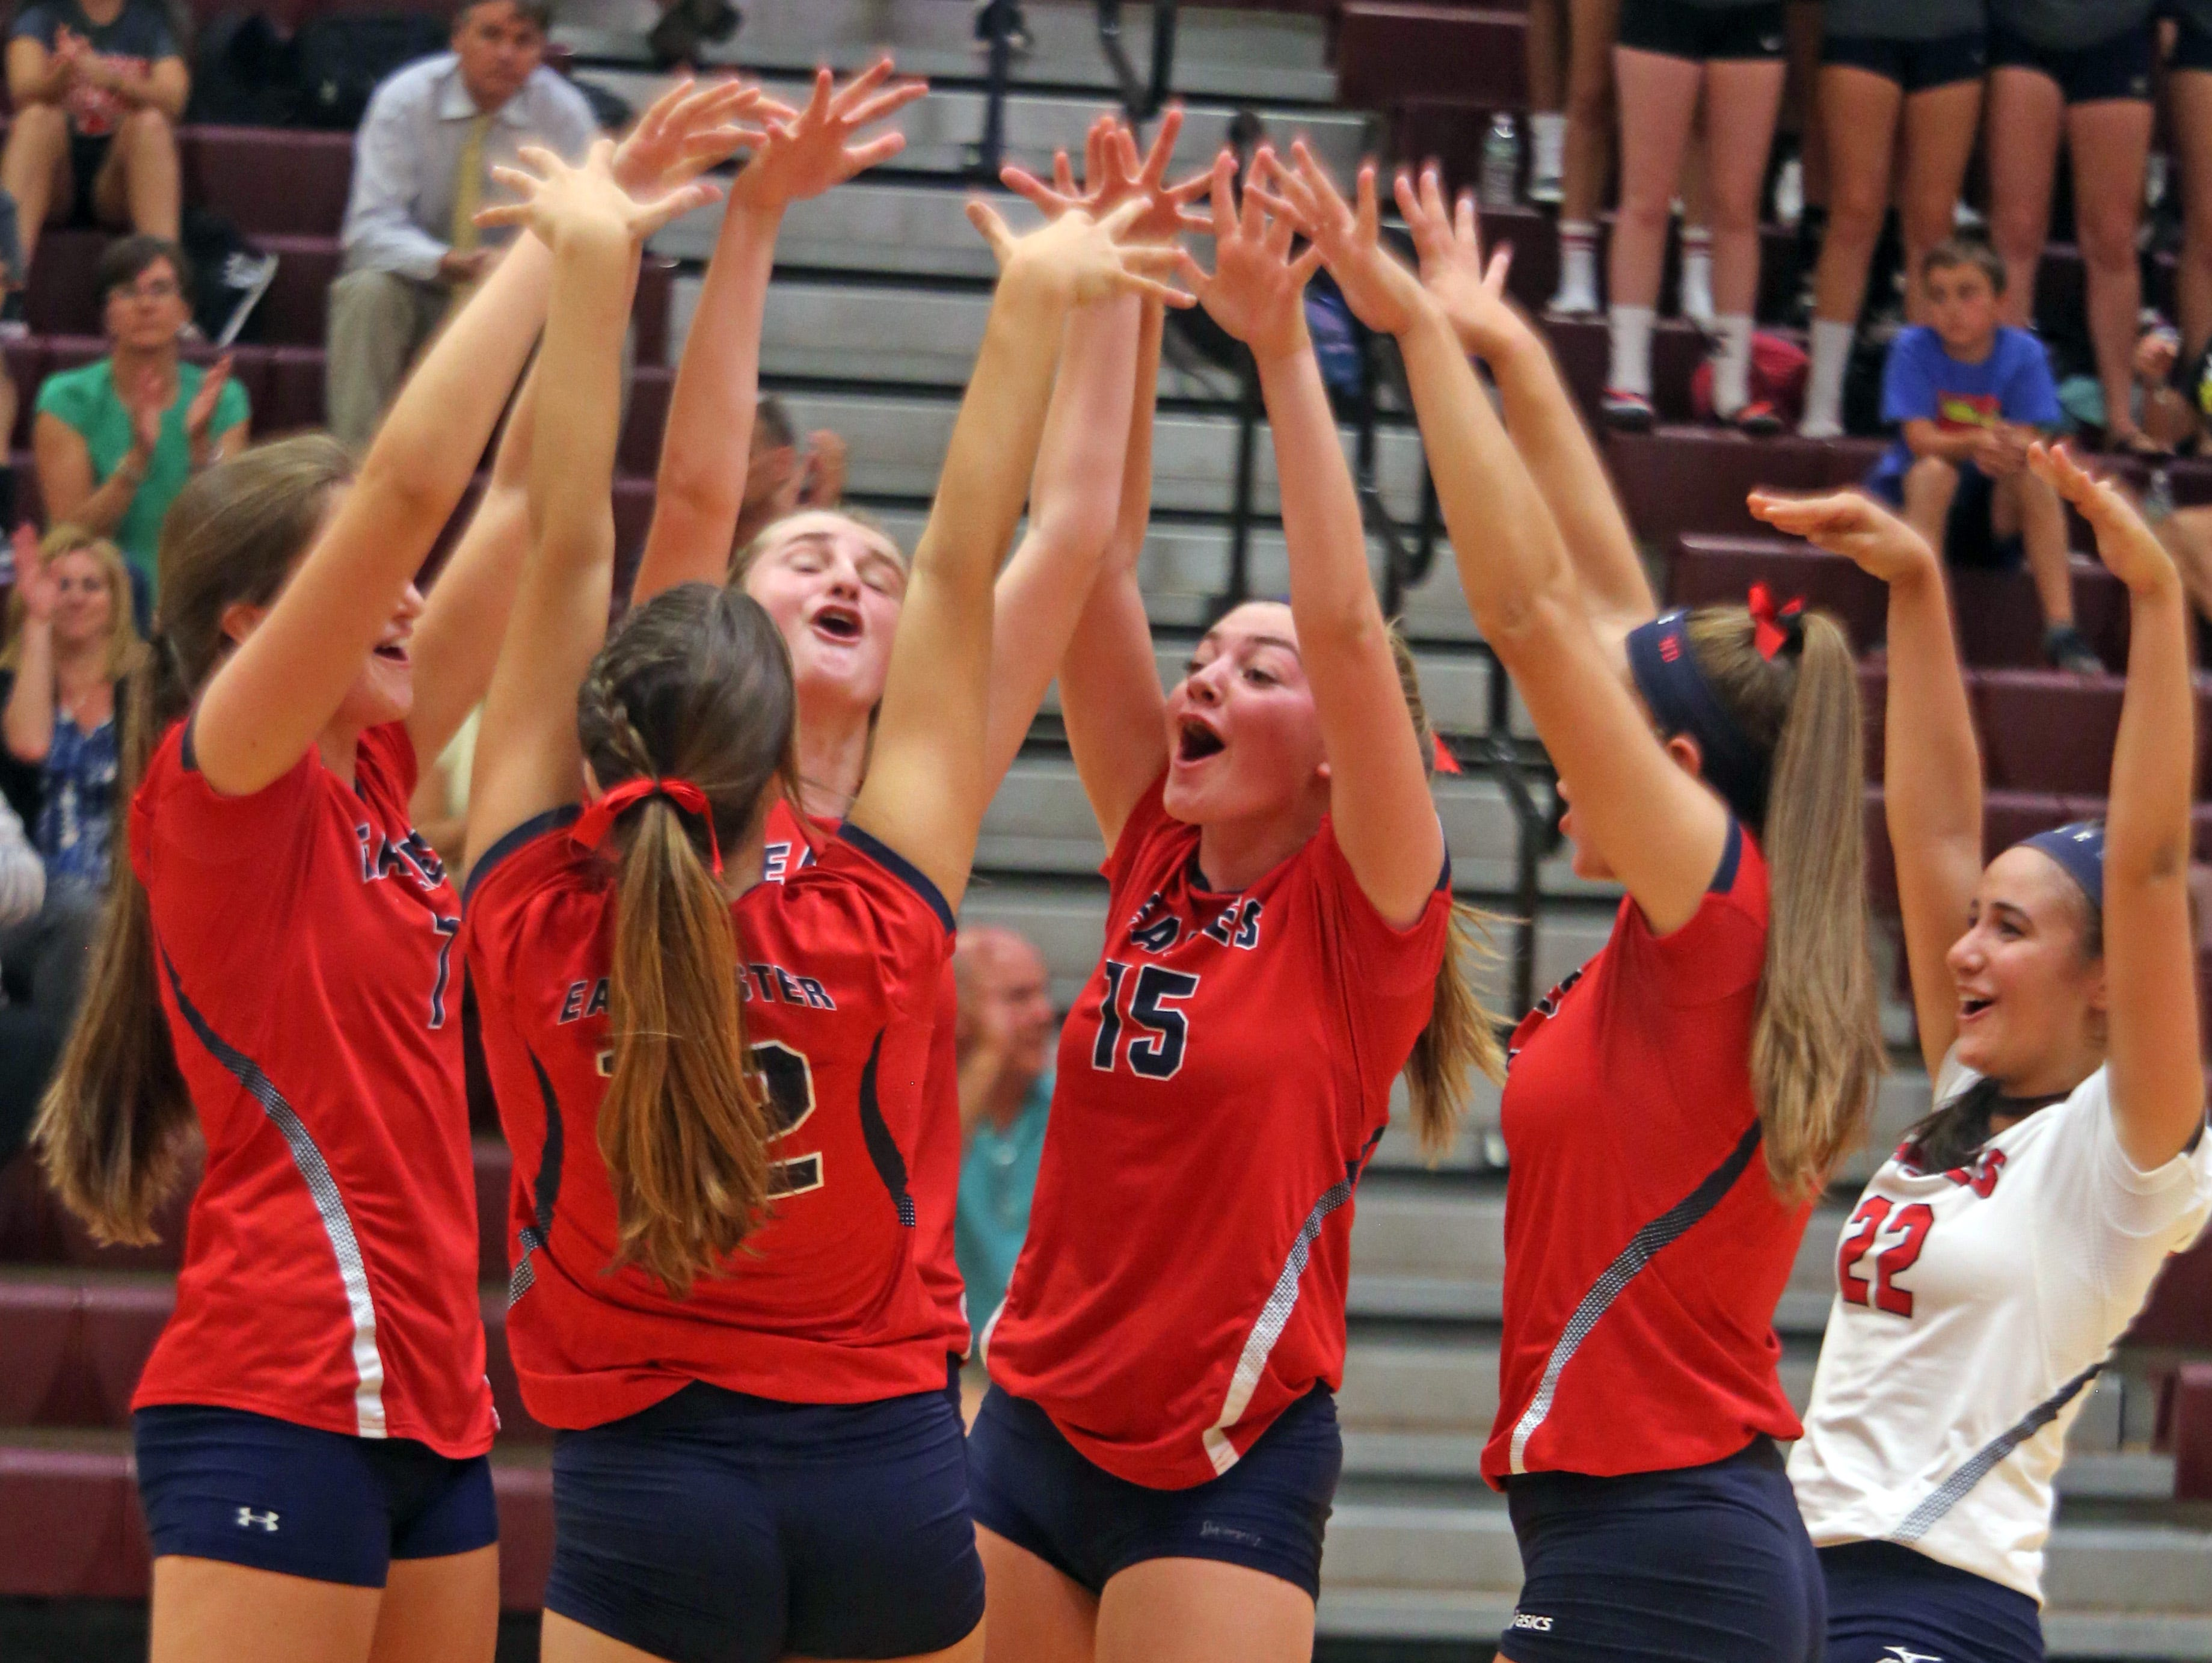 Eastchester celebrates after scoring a point against Harrison during a volleyball match at Harrison High School on Thursday.